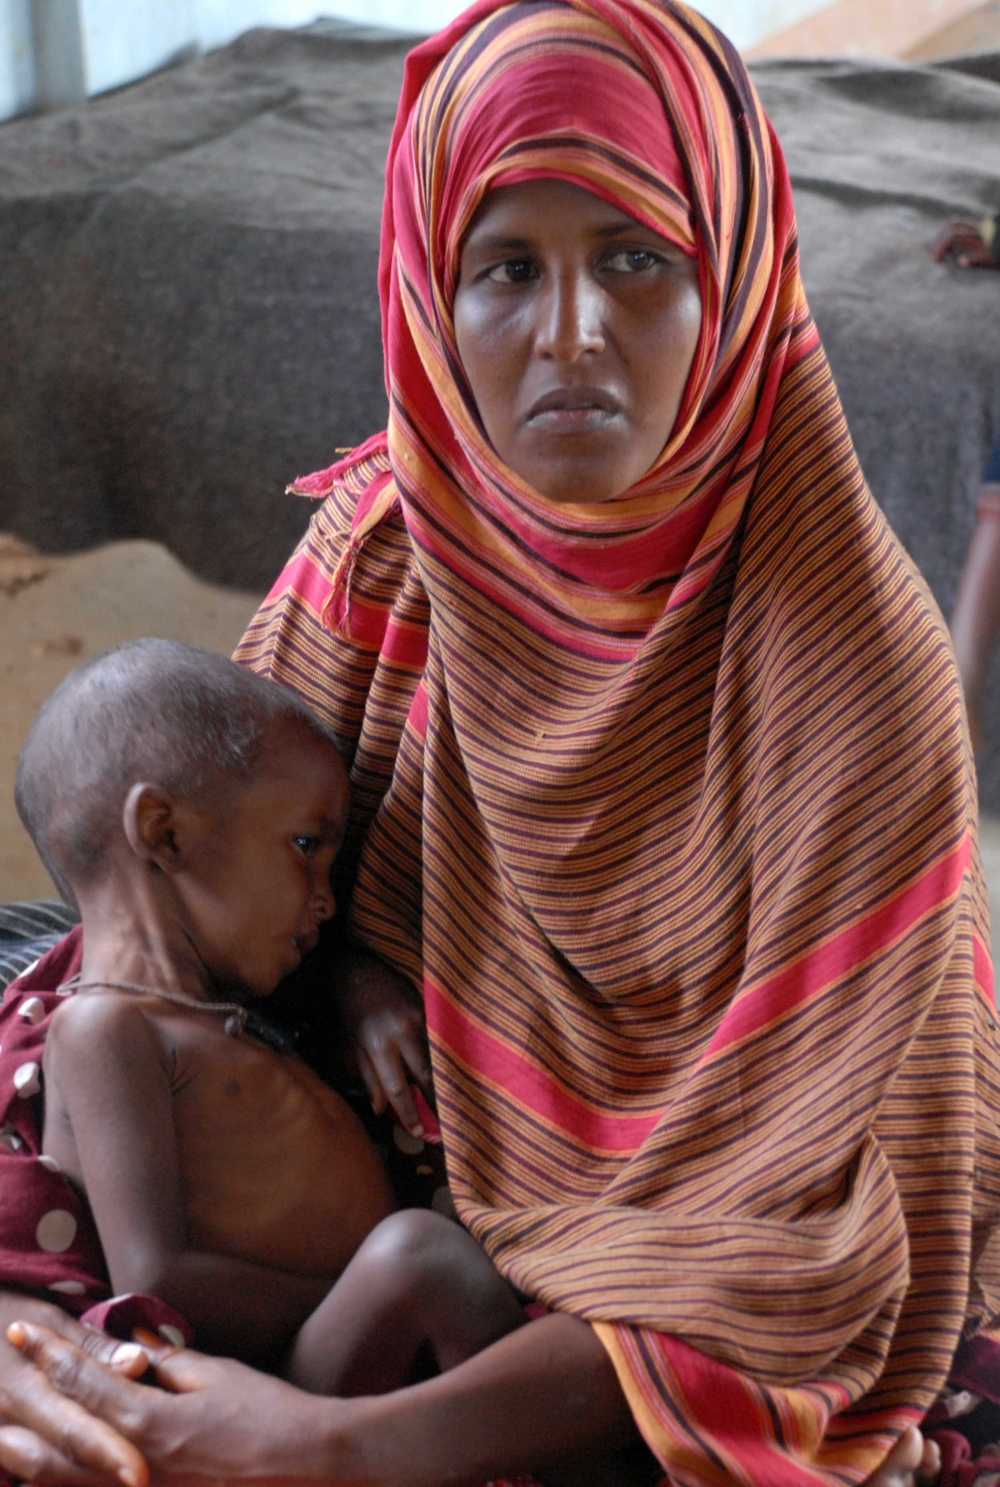 A mother holds her malnourished child in one of the wards for refugees, Dadaab, Garissa district, Kenya.